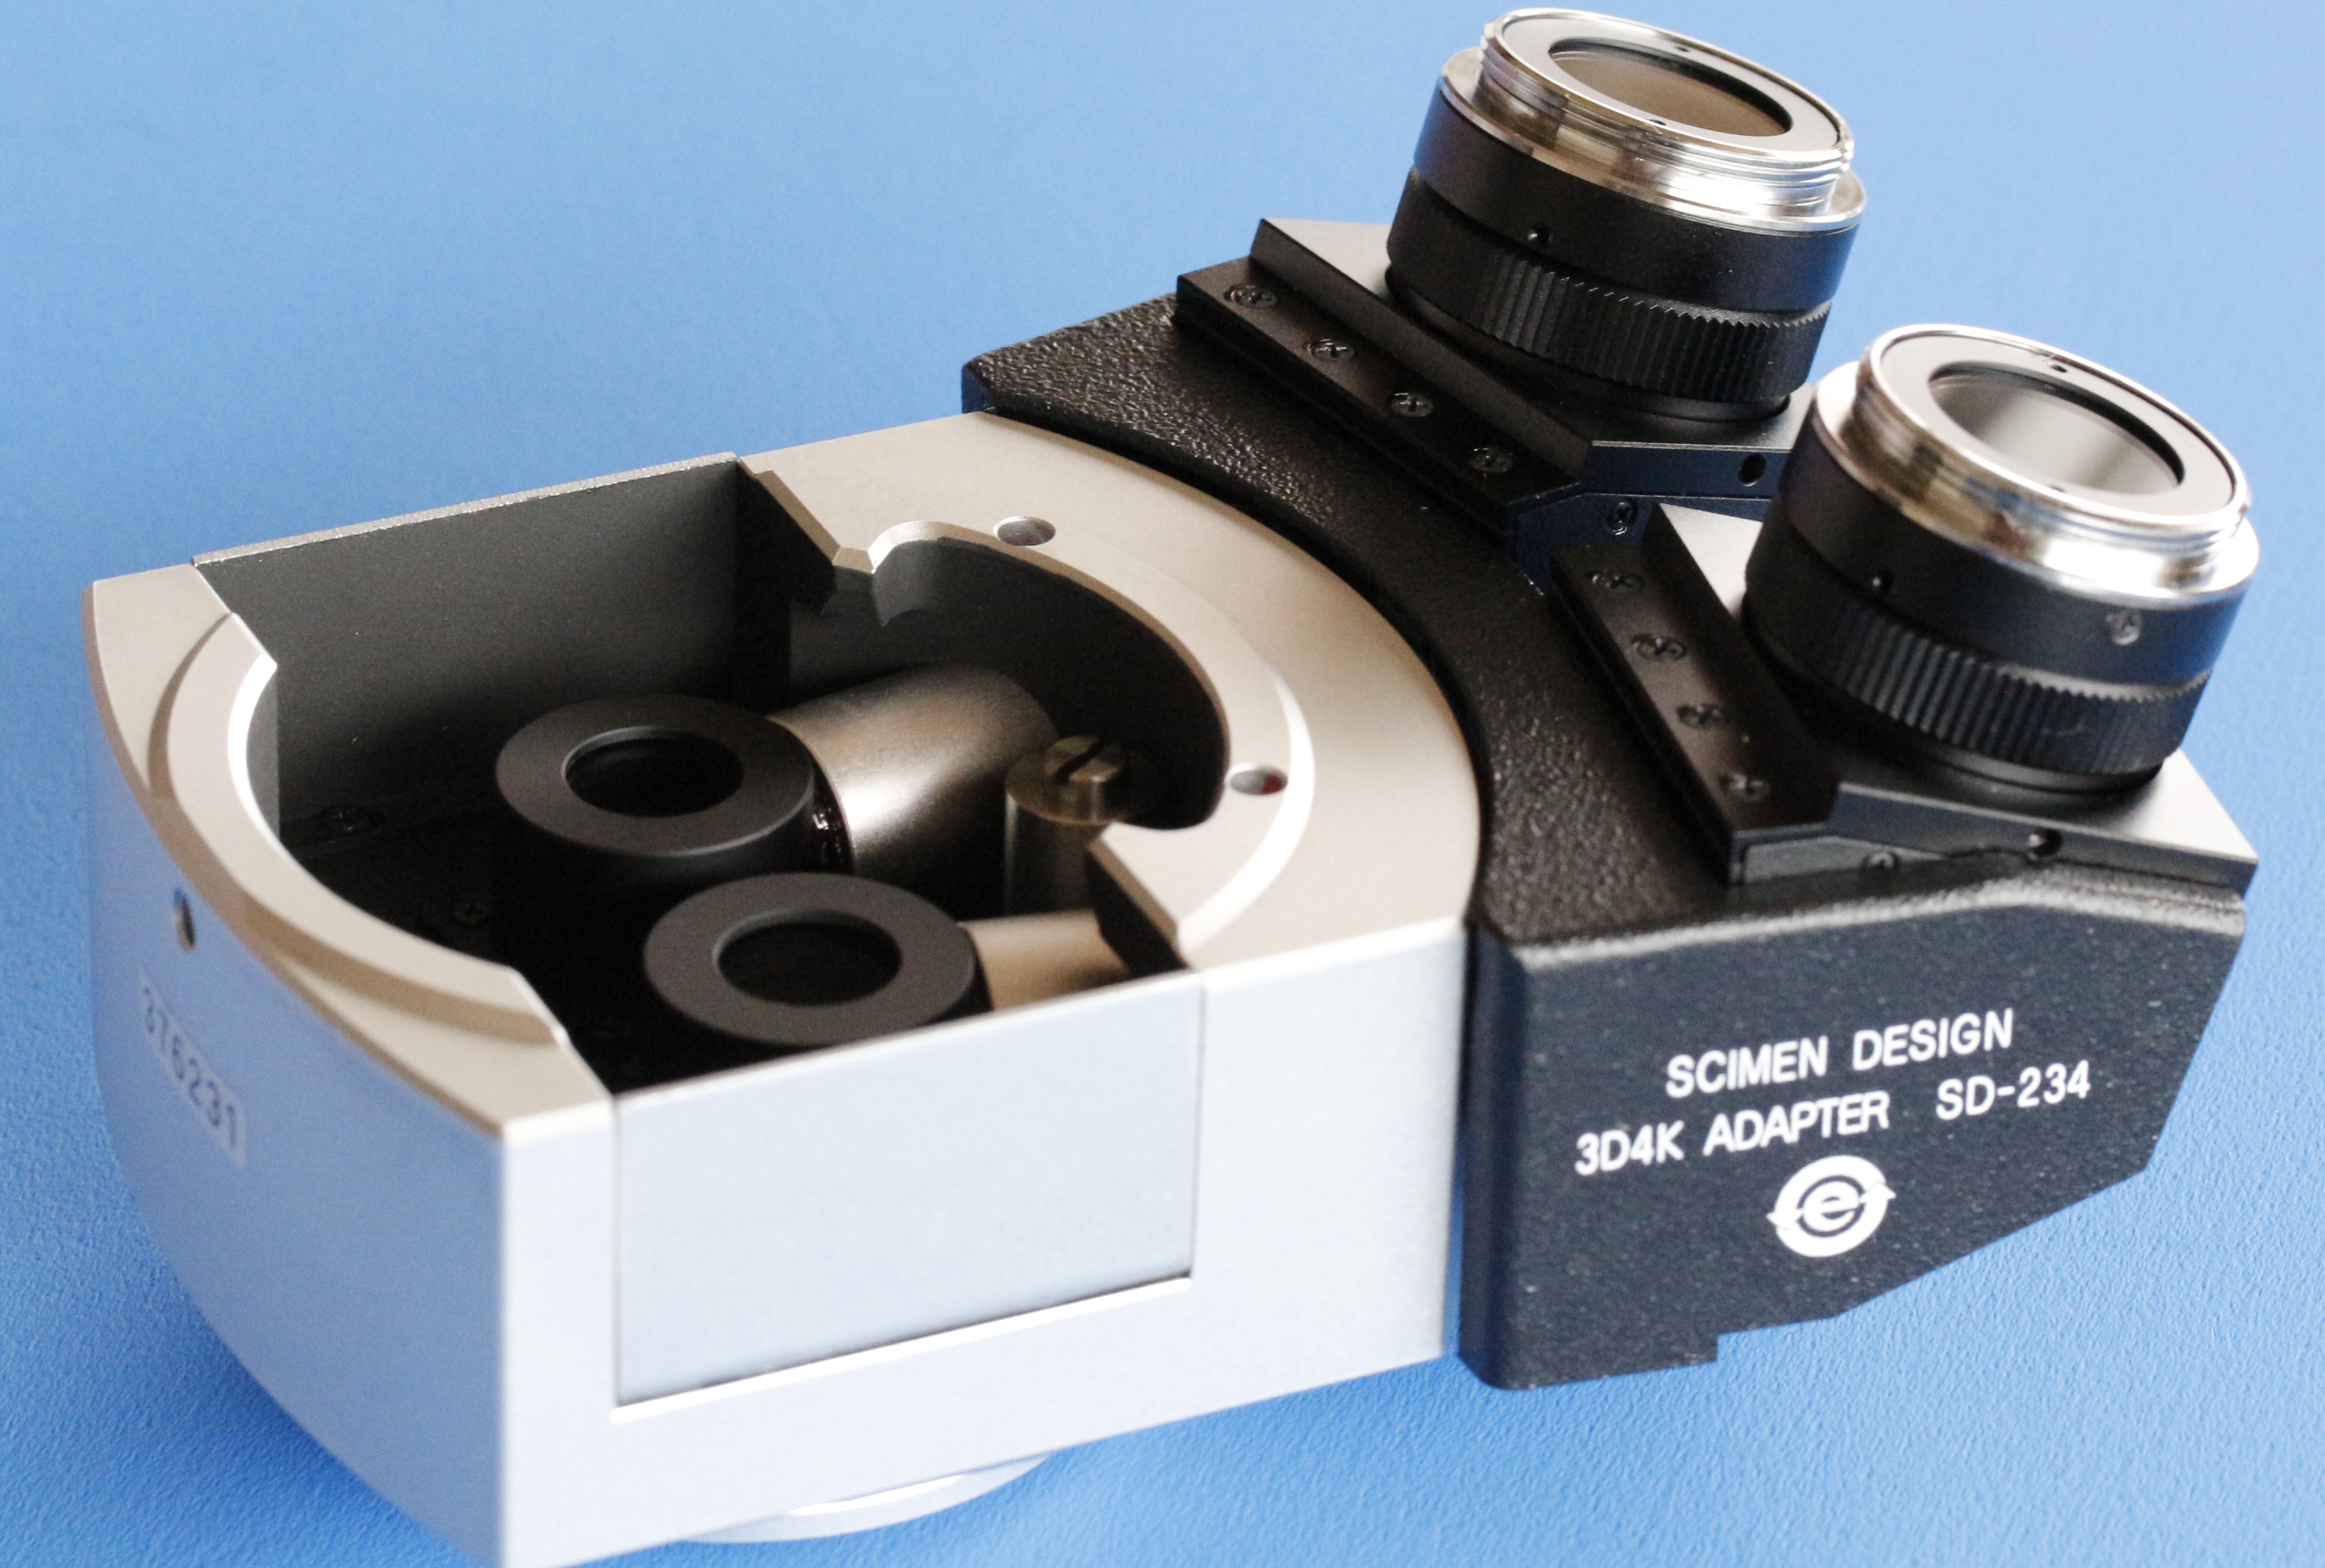 3D adapter for Leica microscope